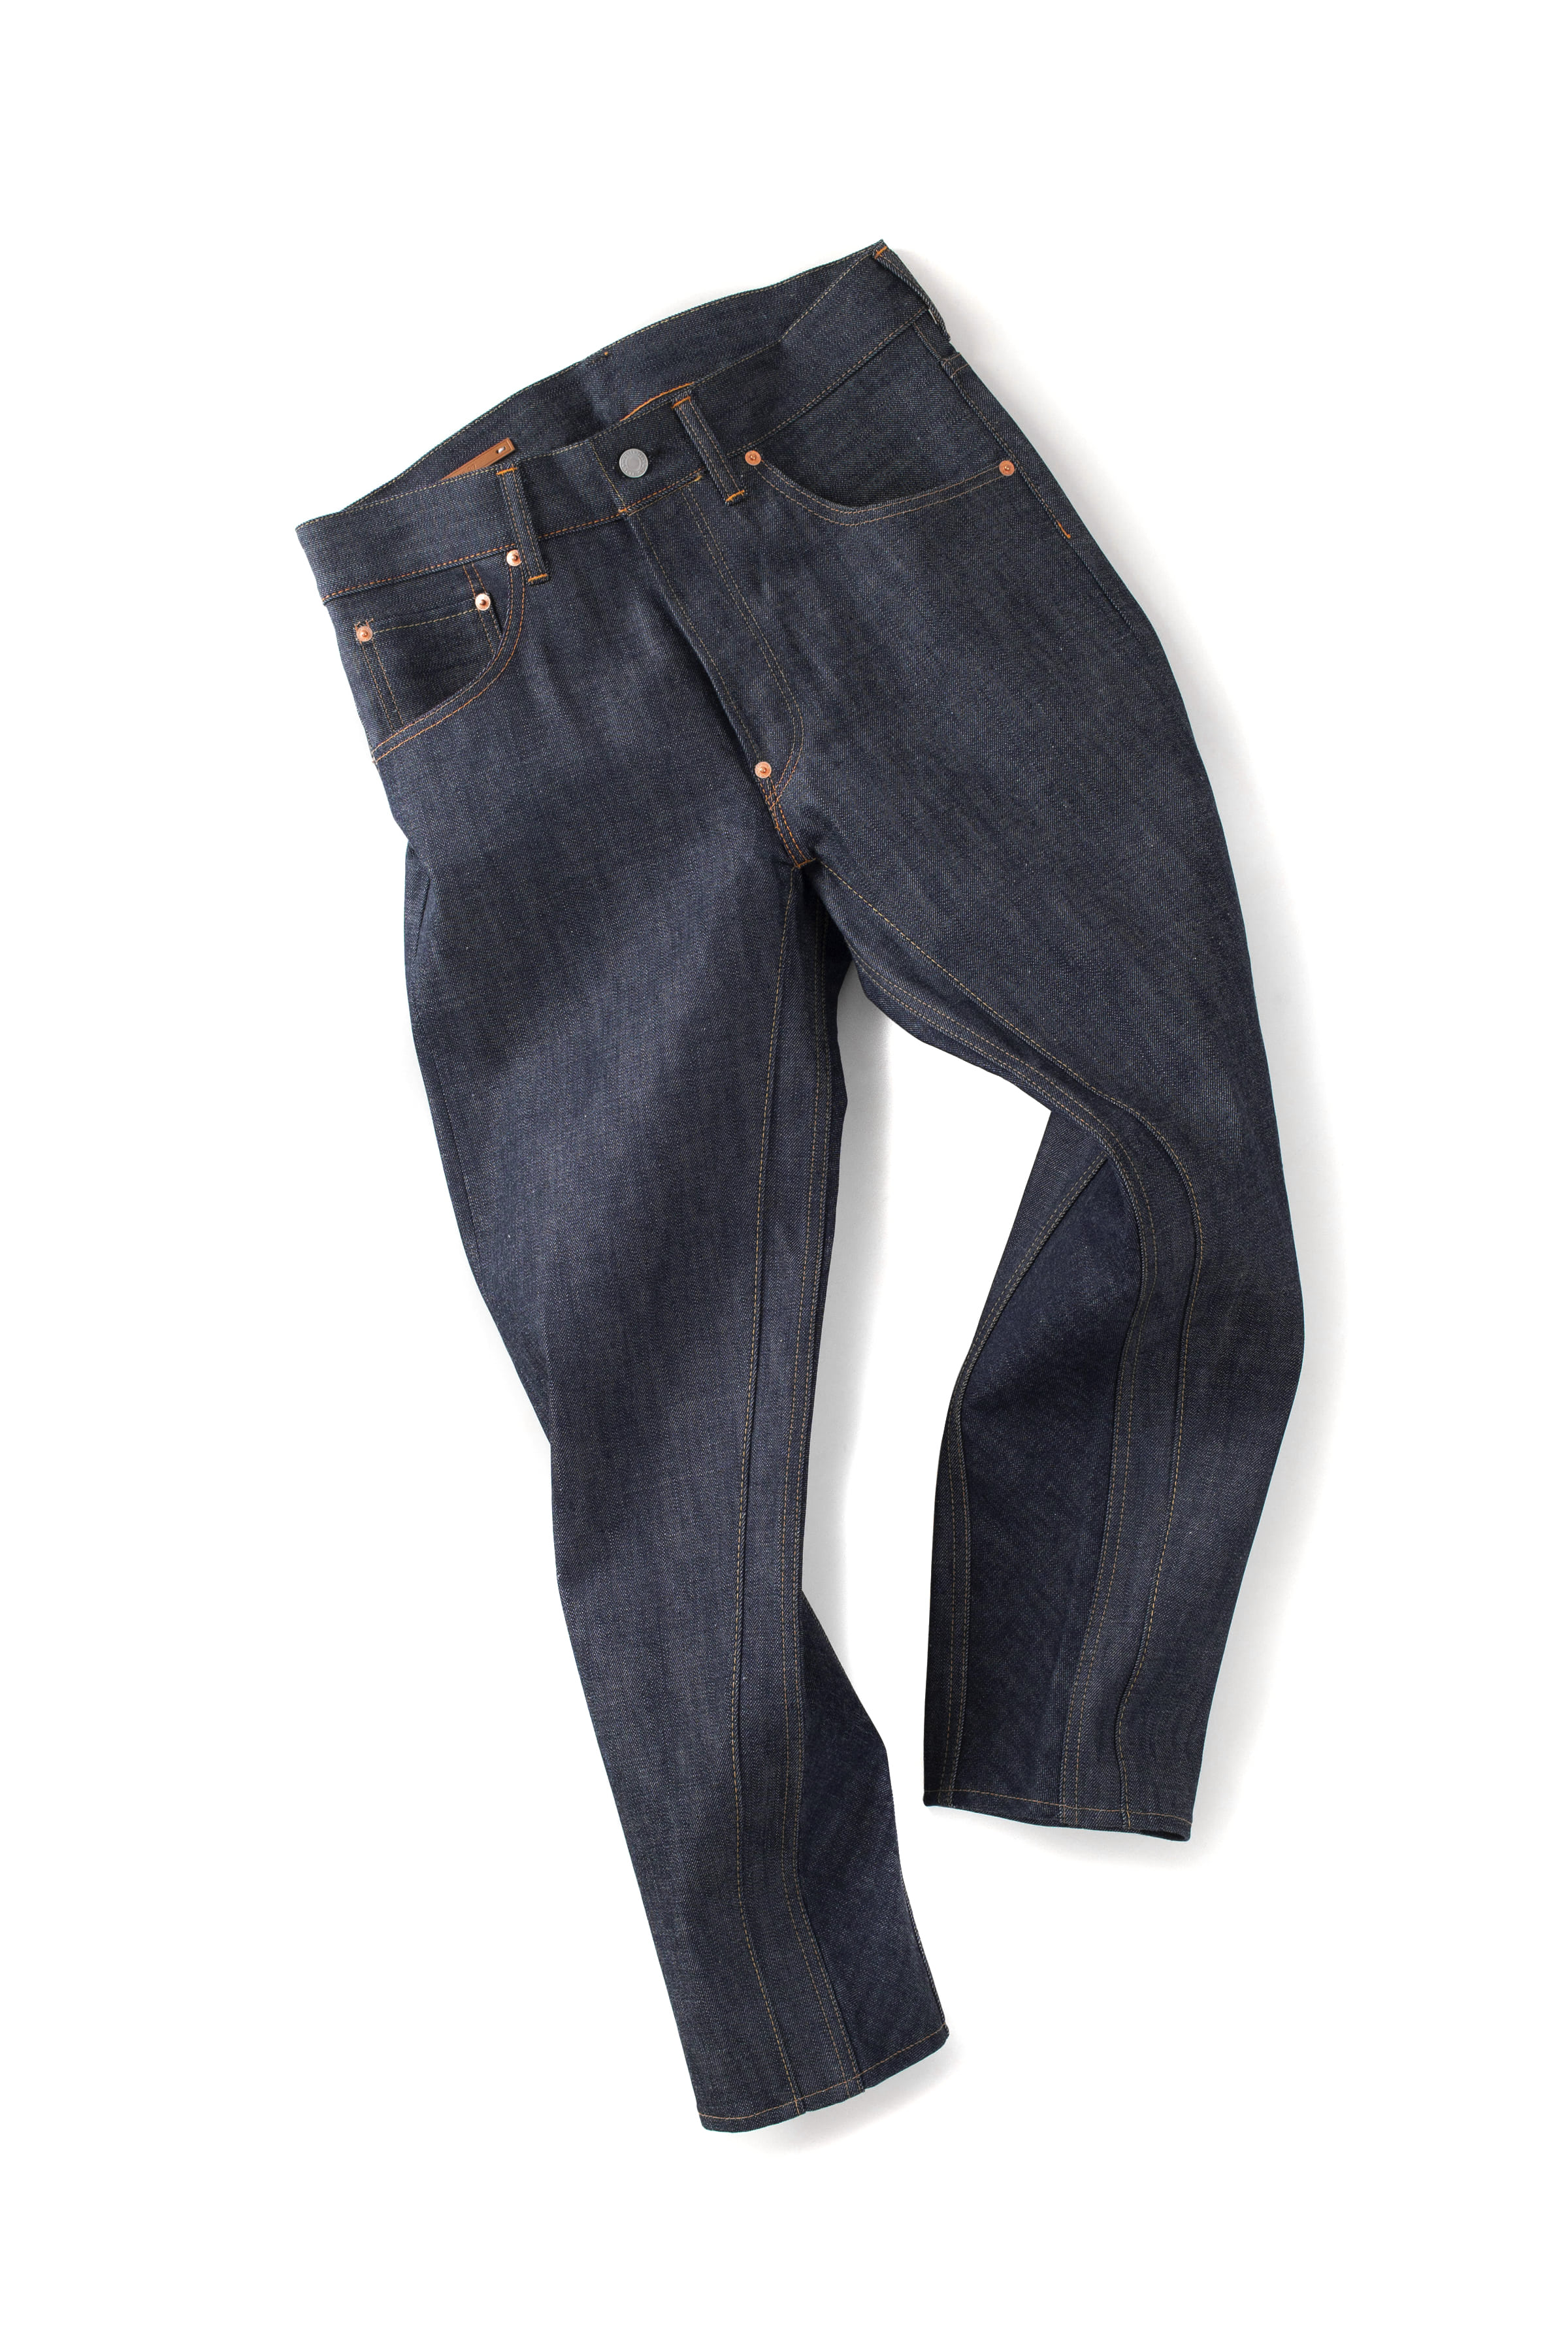 Scye Basics : Selvedge Denim Tapered Paneled Jeans (Indigo)